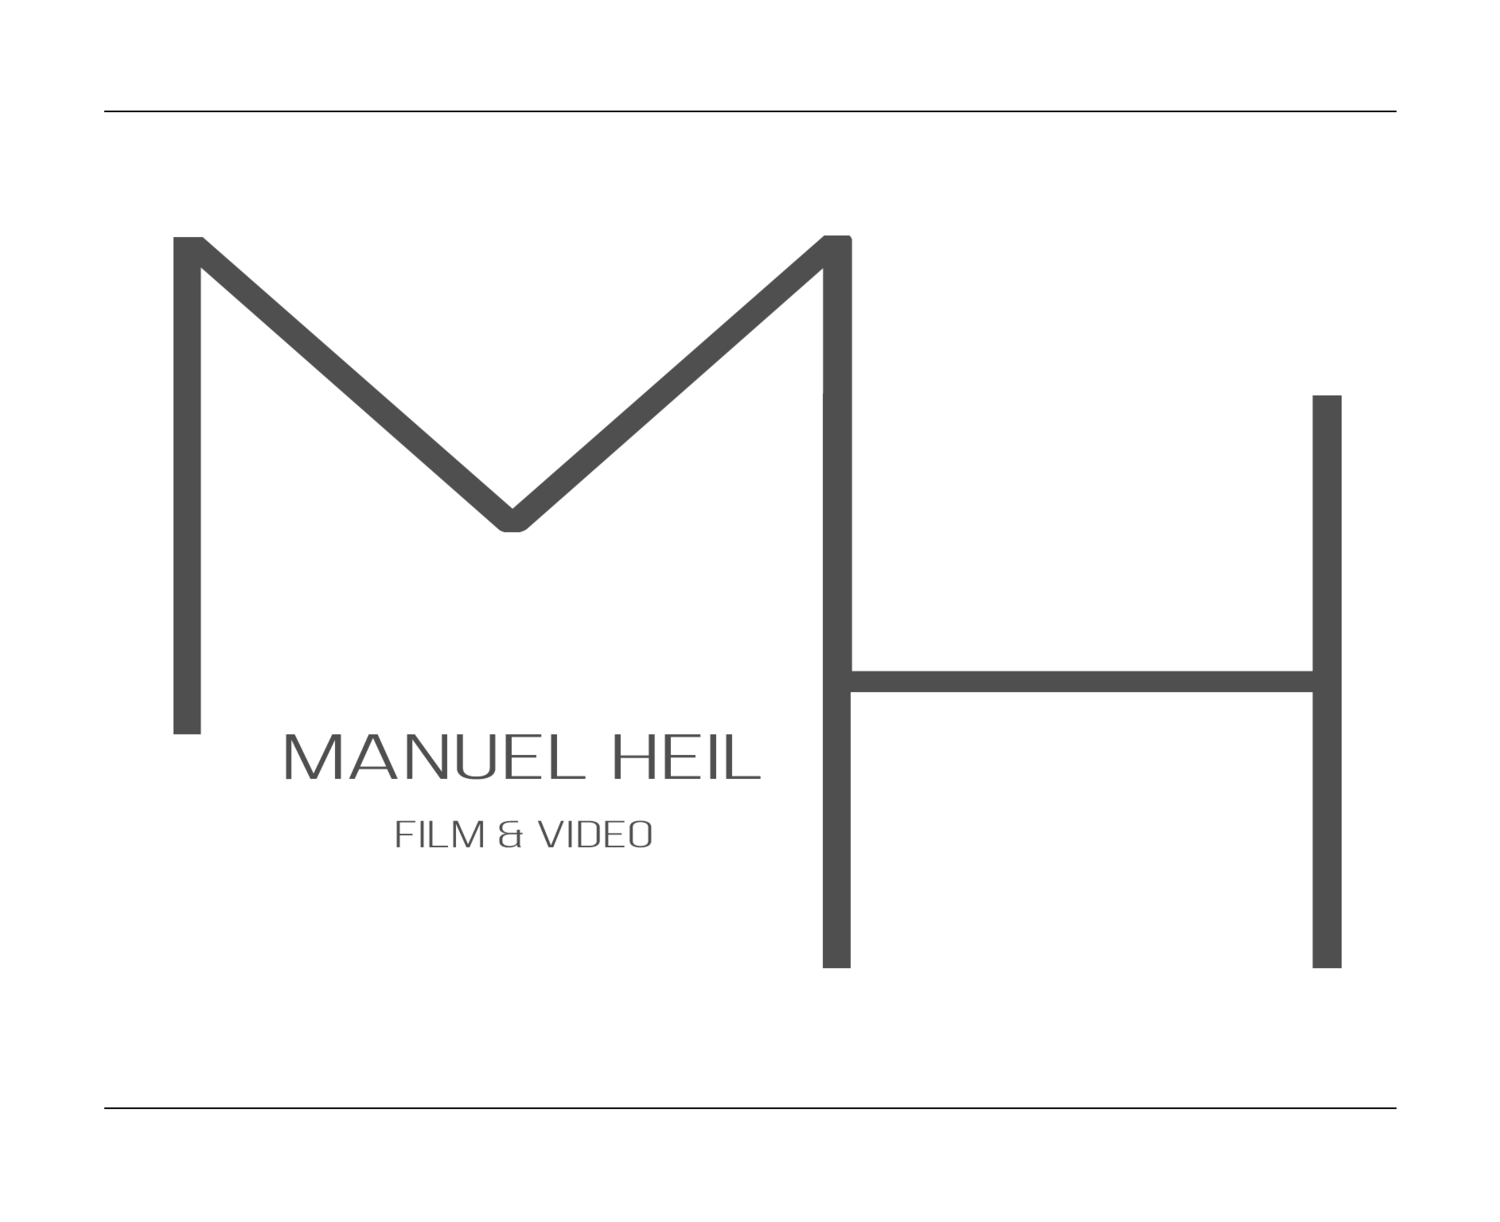 Manuel Heil - film & video